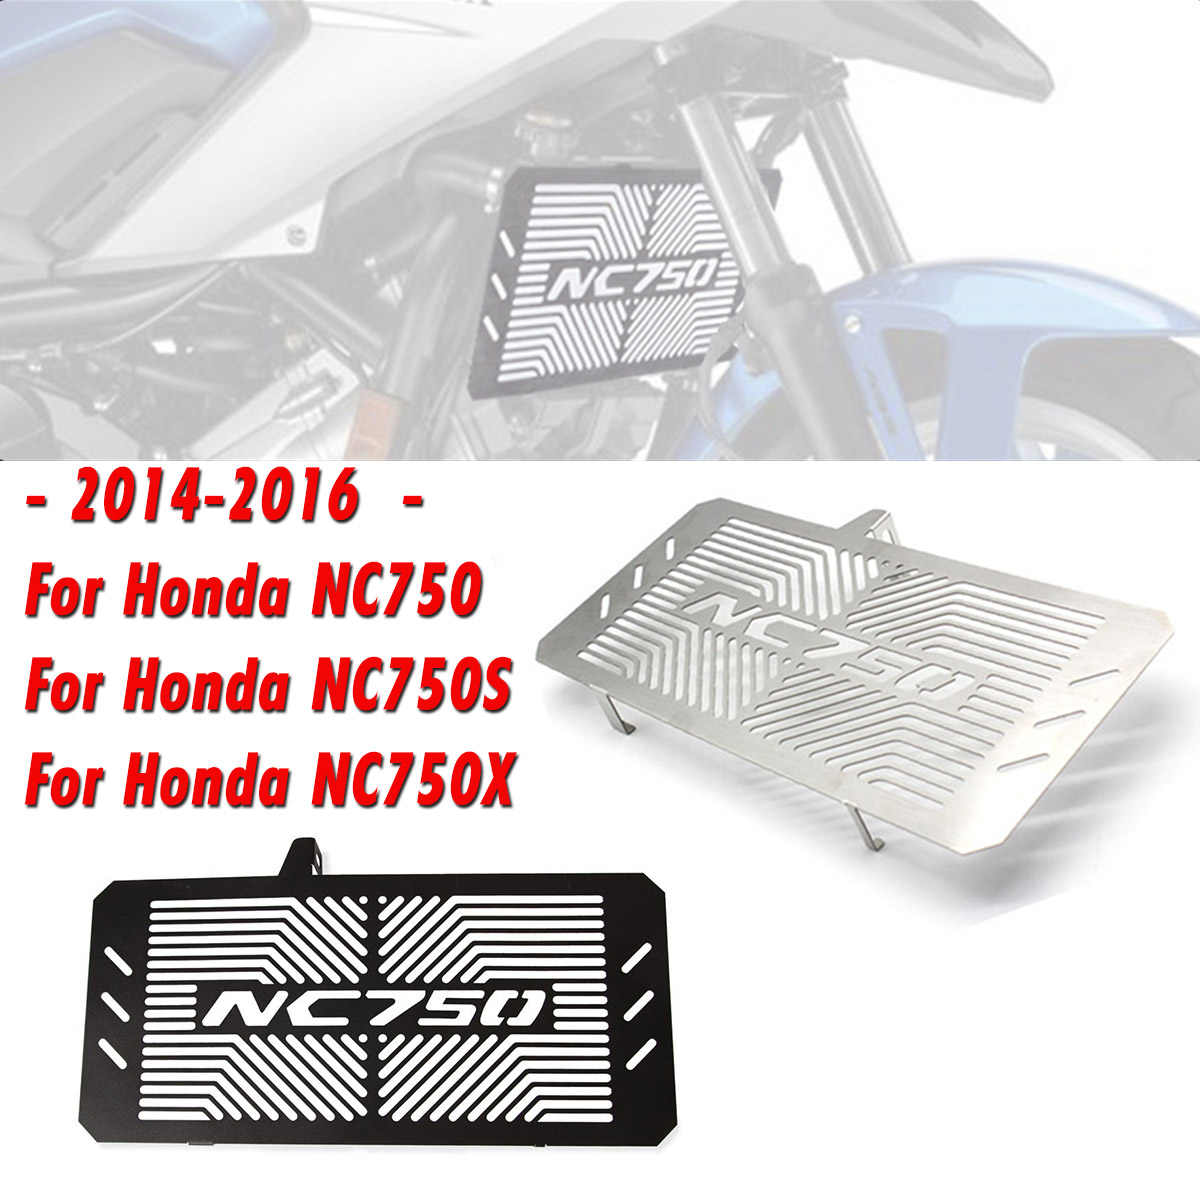 Stainless Steel Motorcycle Radiator Guard Protector Grille Grill Cover For HONDA NC750 NC750S NC750X NC 750S/X 2014 2015 2016